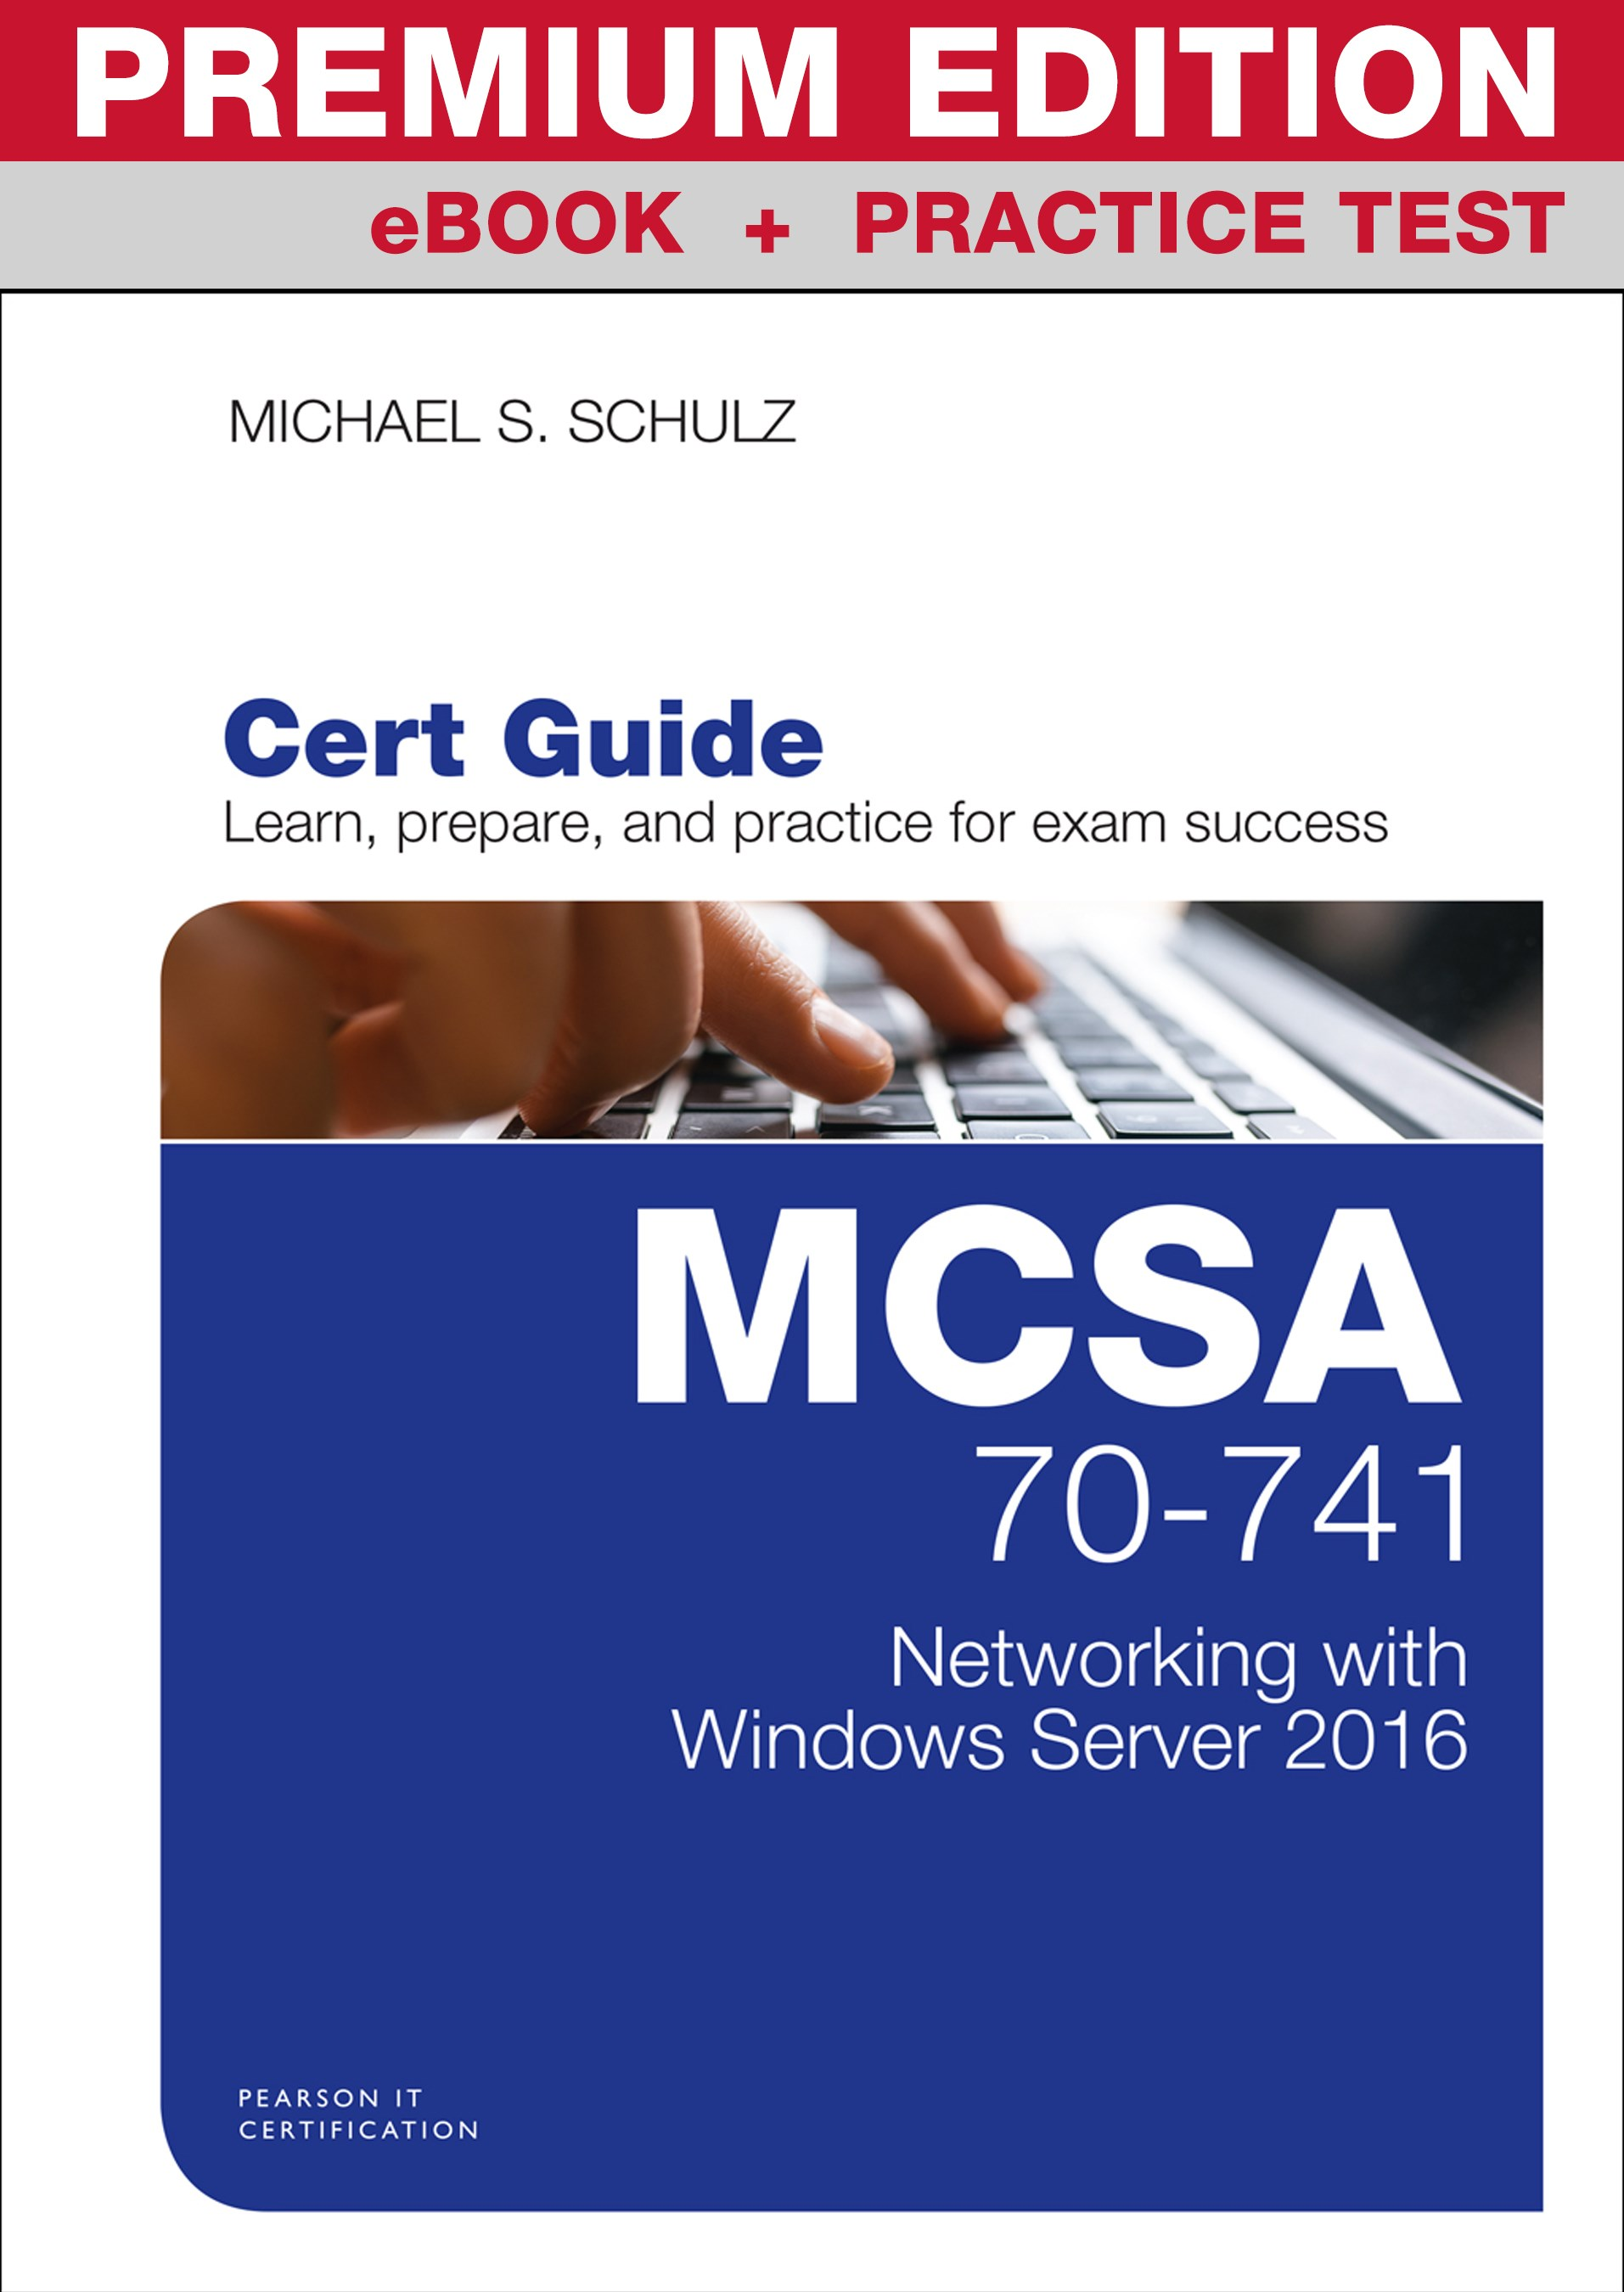 MCSA 70-741 Cert Guide Premium Edition and Practice Tests: Networking with Windows Server 2016